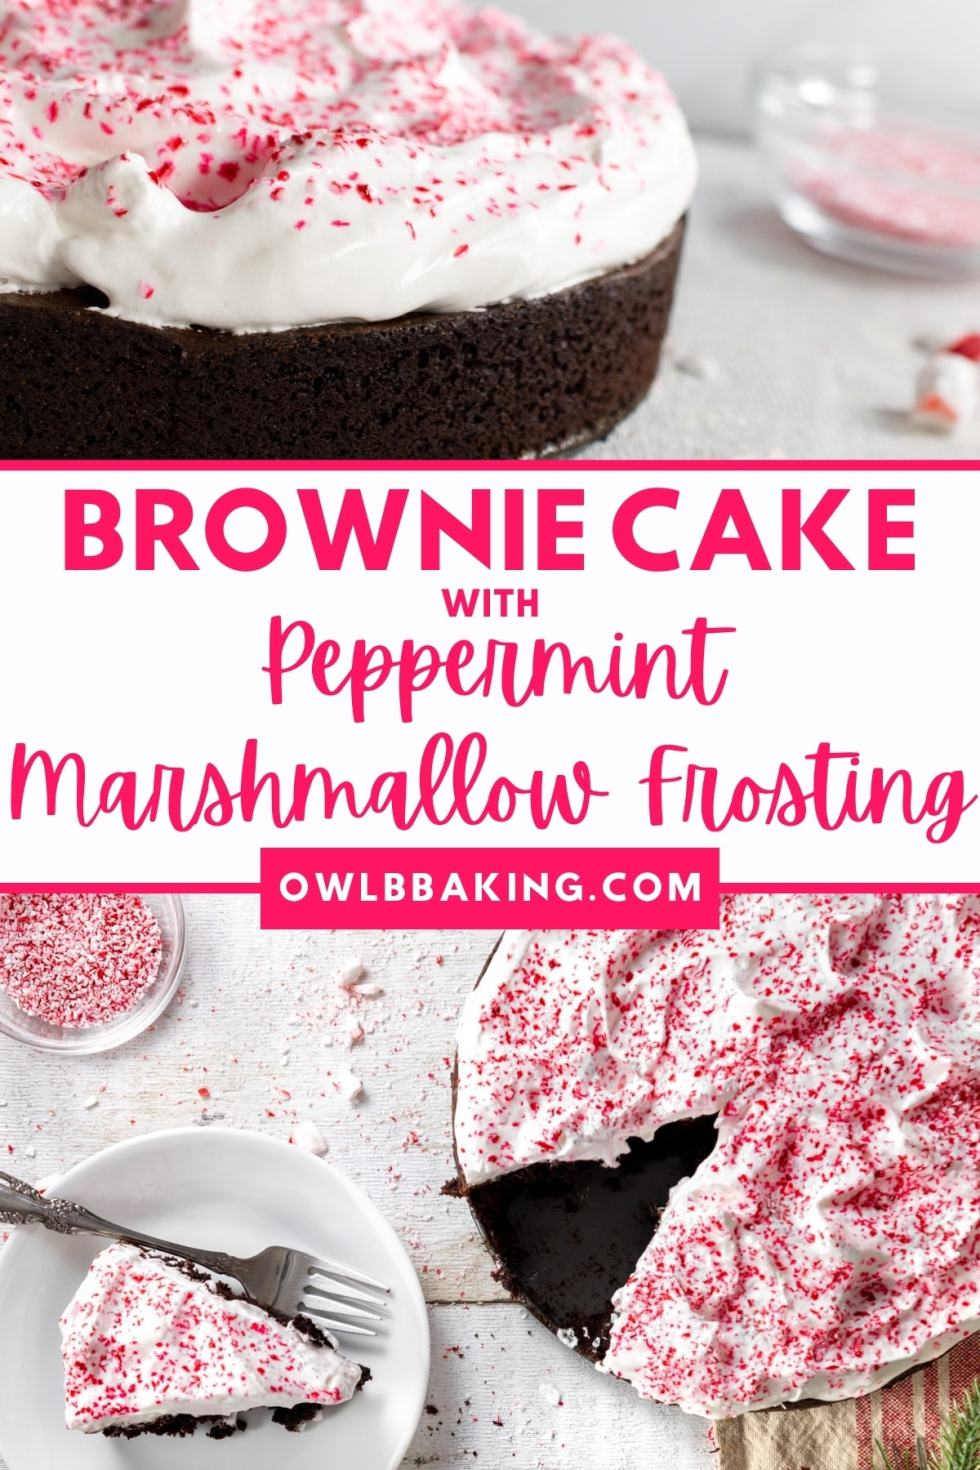 Brownie Cake with Peppermint Marshmallow Frosting